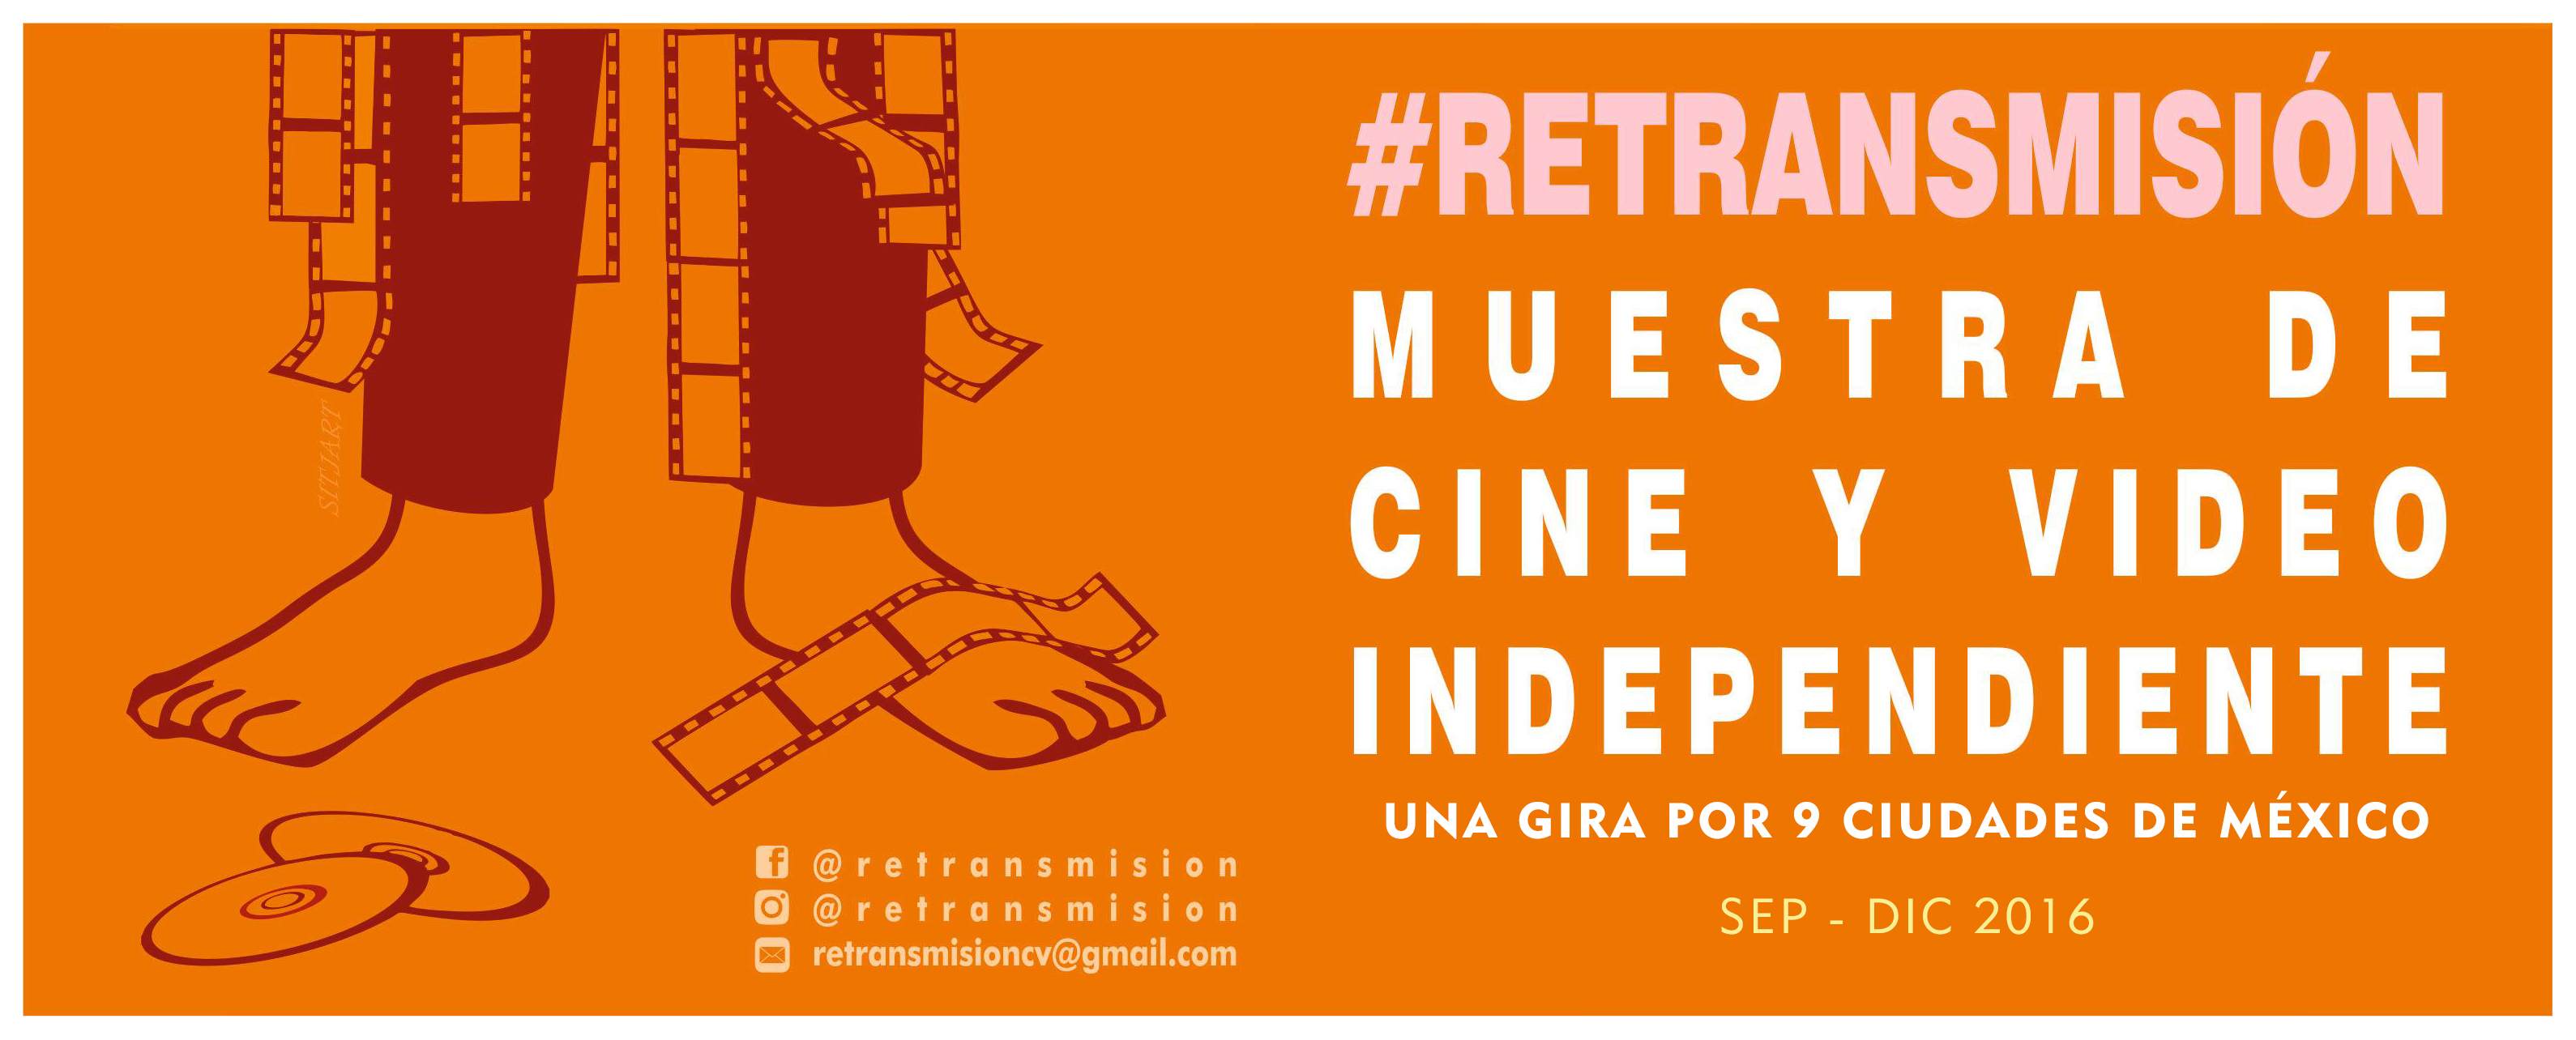 Poster 1 Retransmisión 2016 Cine Independiente y Video Independiente